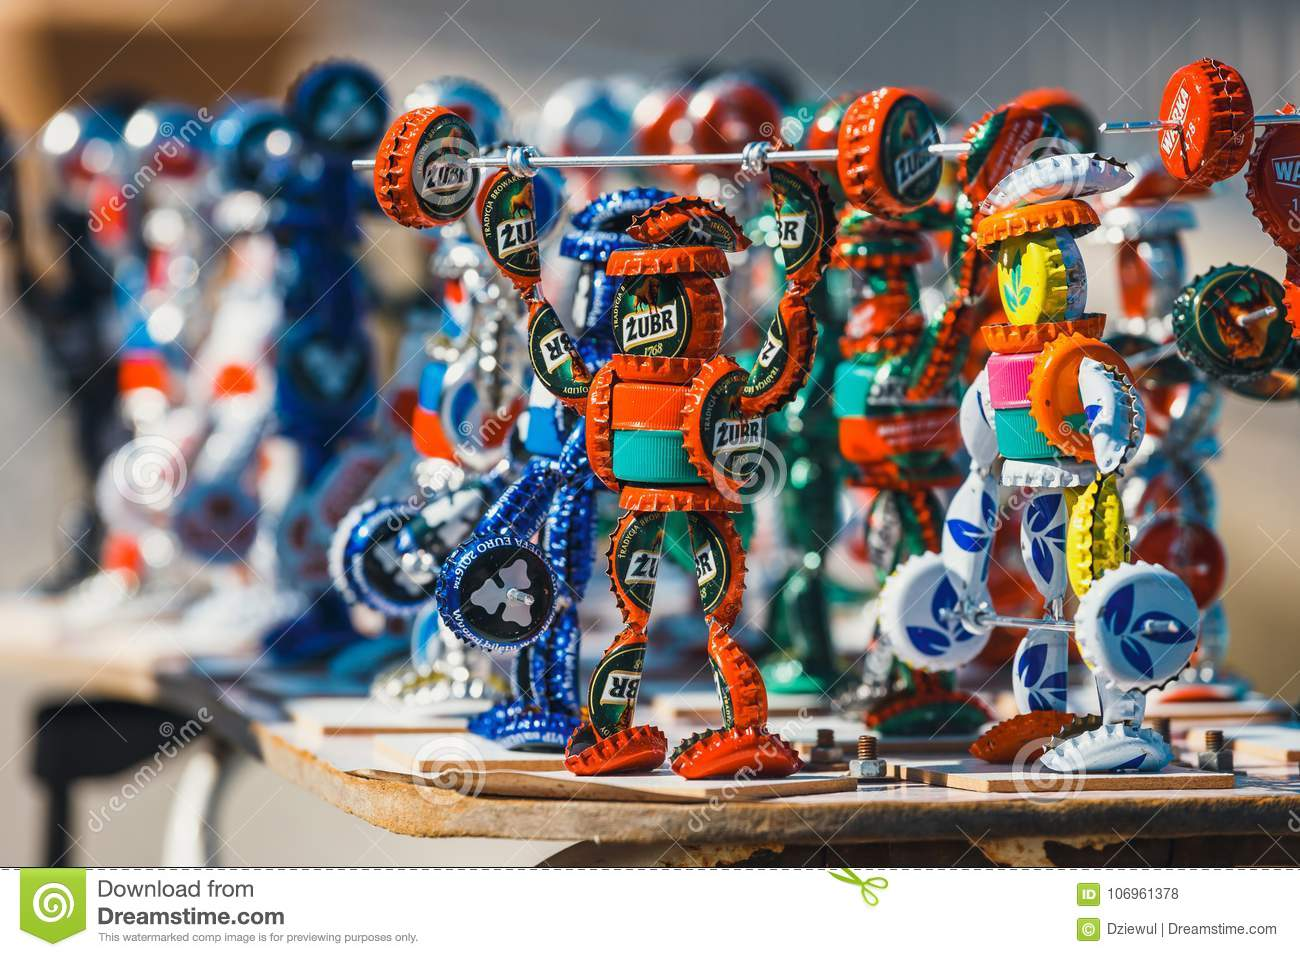 Download Strongman Figurines Made From Bottle Caps And Sold On The Promenade Next To The Beach By A Loca Editorial Stock Photo - Image of cross, crown: 106961378